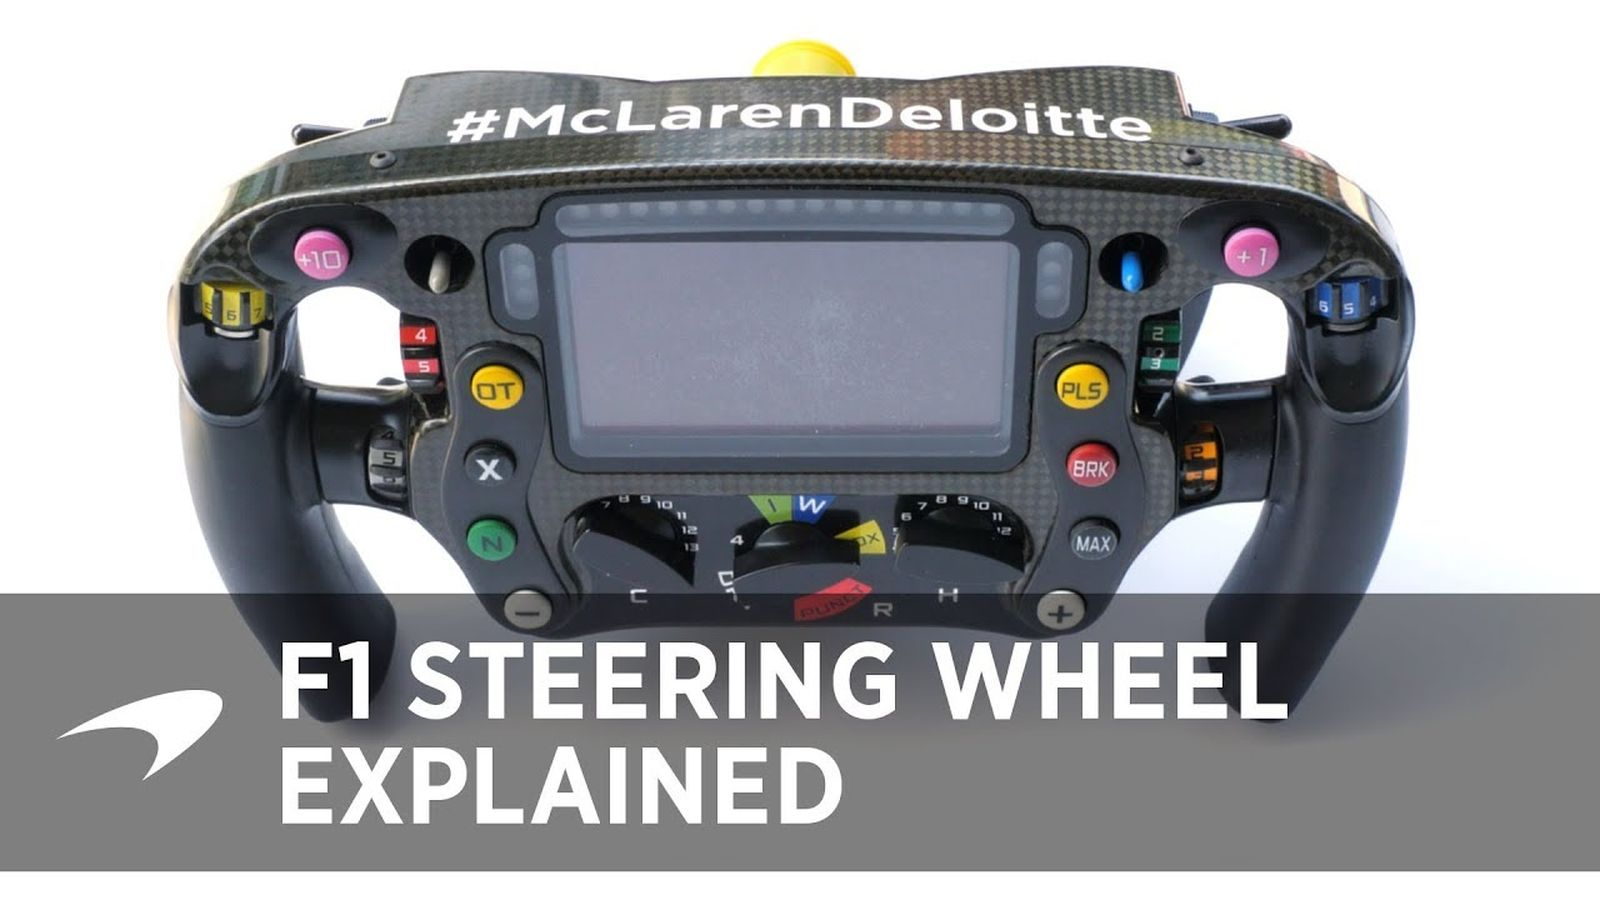 A Guide To The F1 Steering Wheel